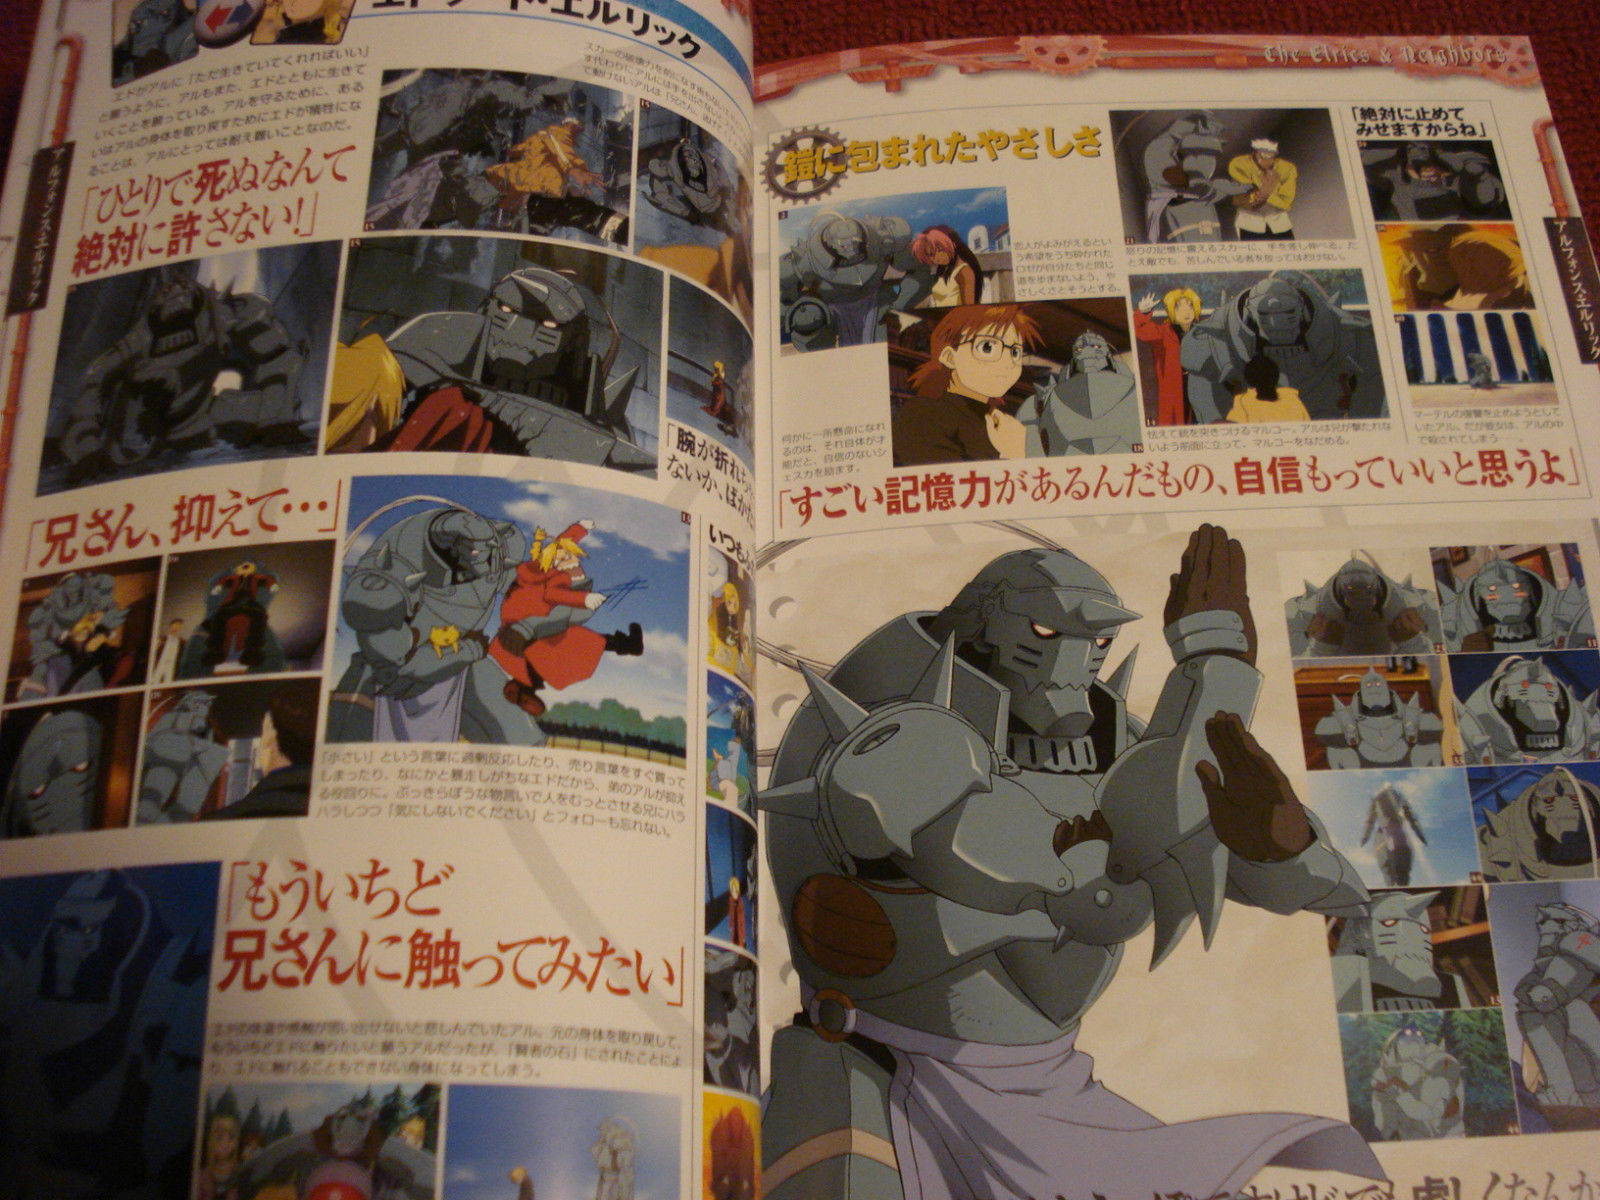 TV Animetion Fullmetal Alchemist Chracters Collection w Poster